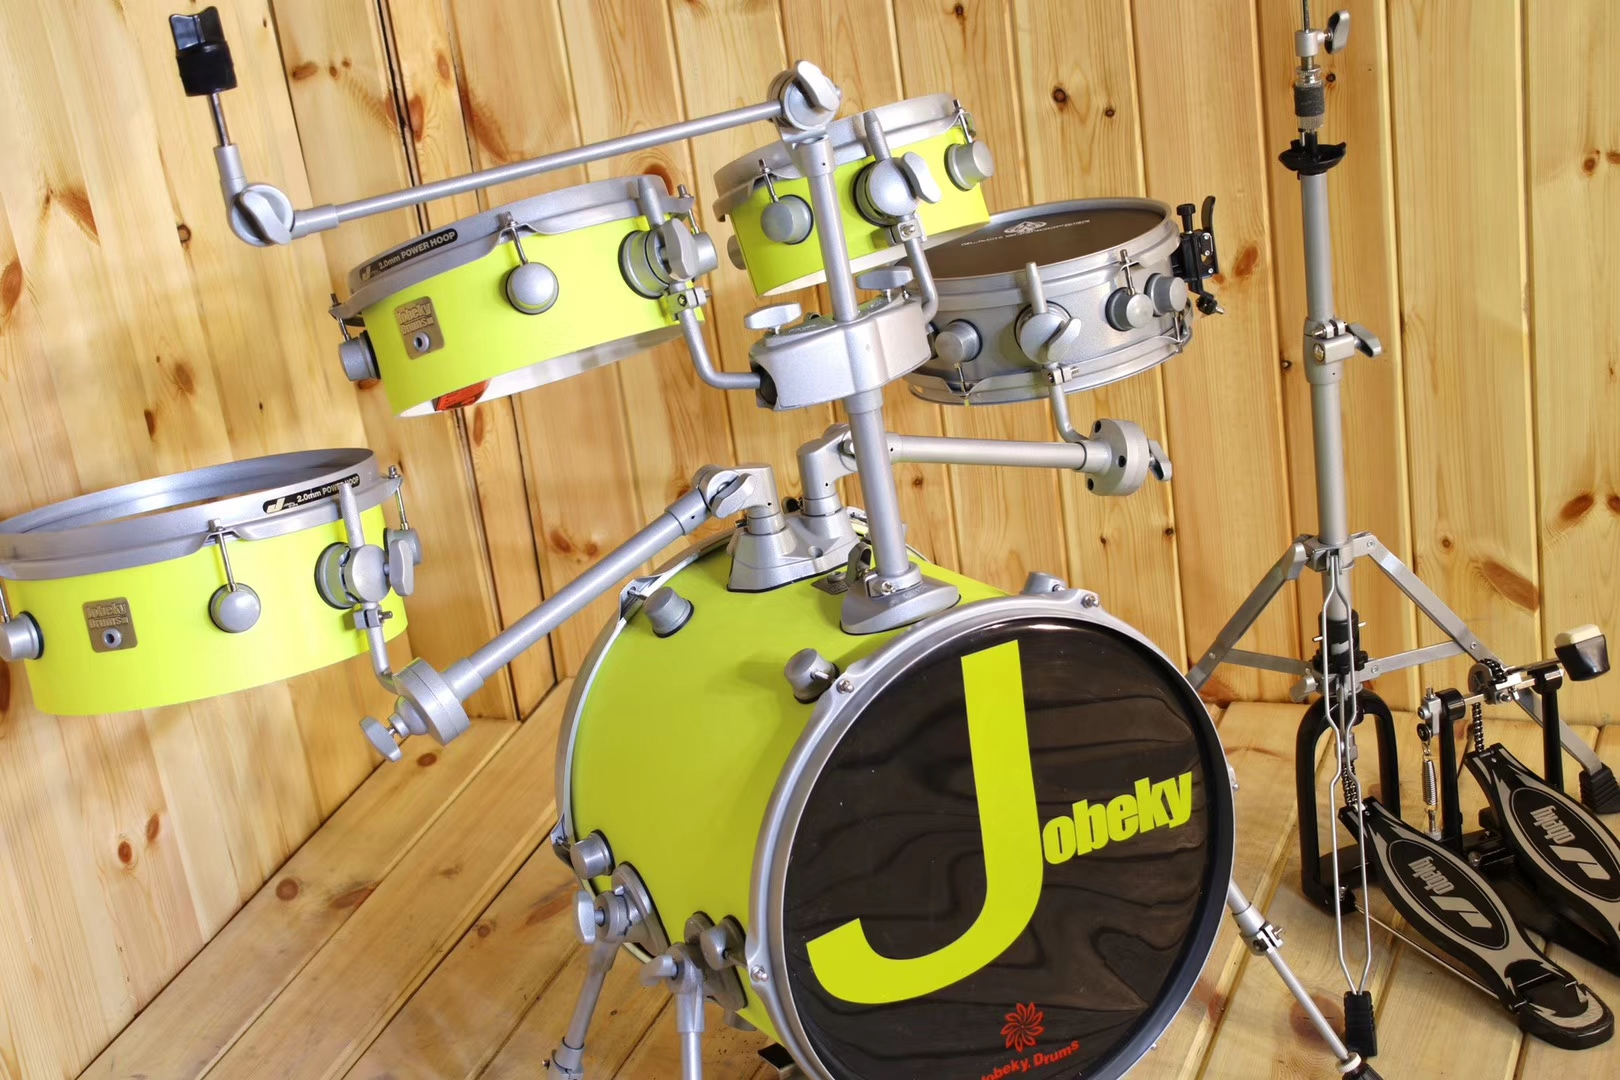 Portable Drum Set